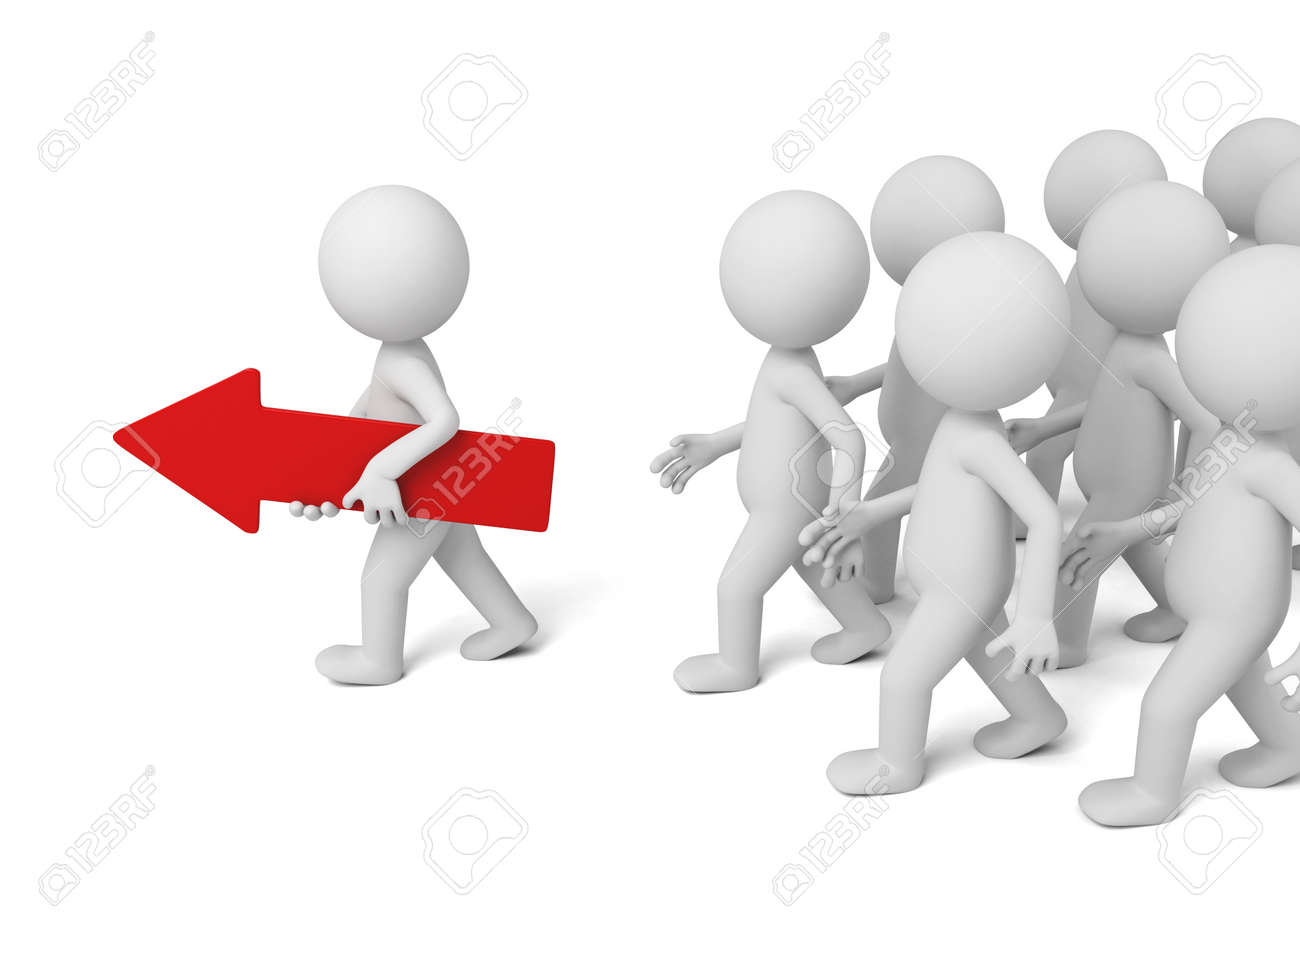 3d people walking with a red arrow. 3d image. Isolated white background - 37816810